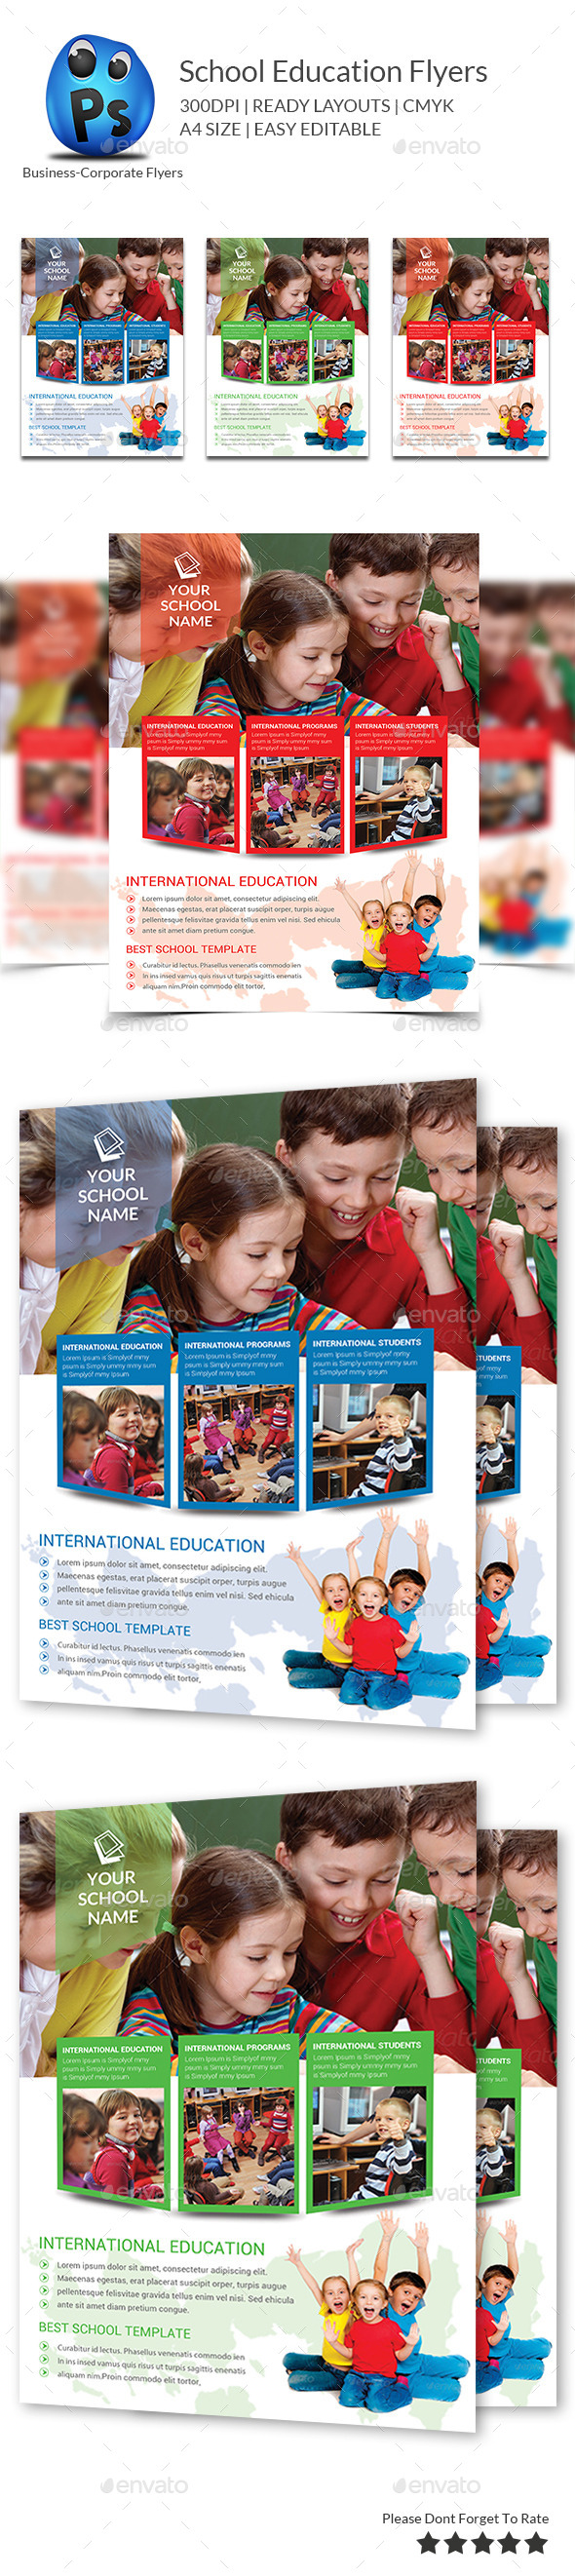 Junior School Education Flyer Template - Flyers Print Templates